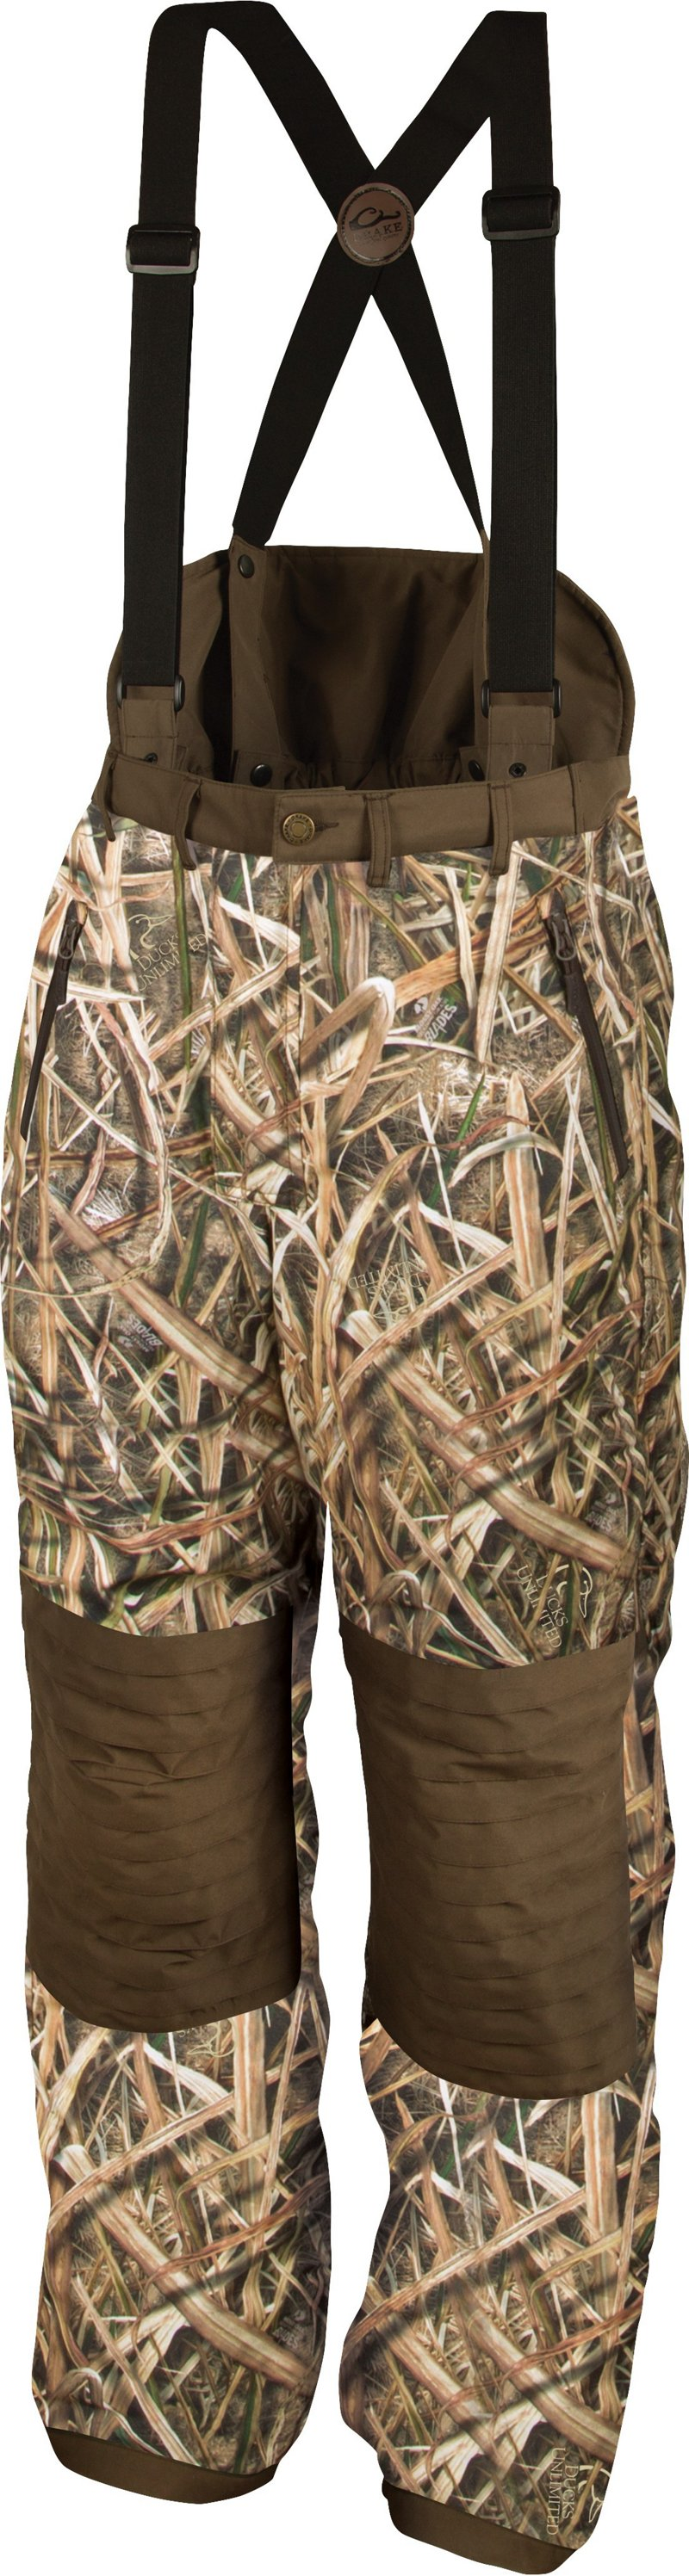 Drake Waterfowl Men's Guardian Elite High Back Insulated Hunting Pants - Camo Clothing, Adult Insulated Camo at Academy Sports thumbnail